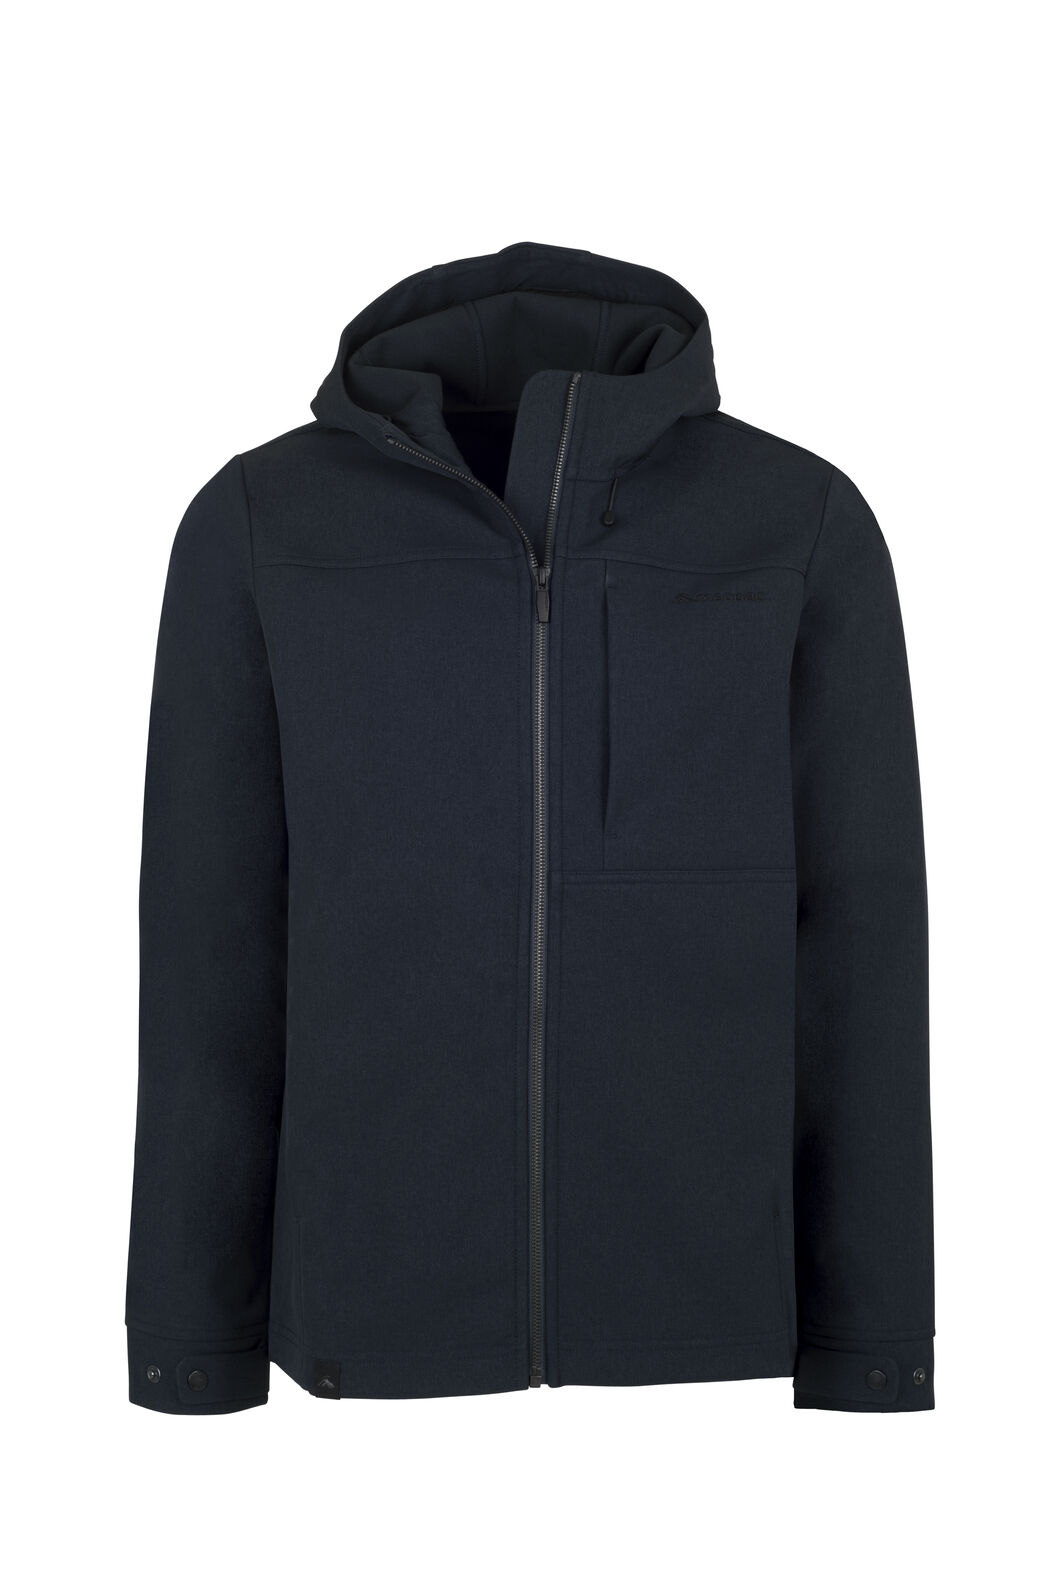 Macpac Chord Hooded Softshell Jacket - Men's, Carbon, hi-res